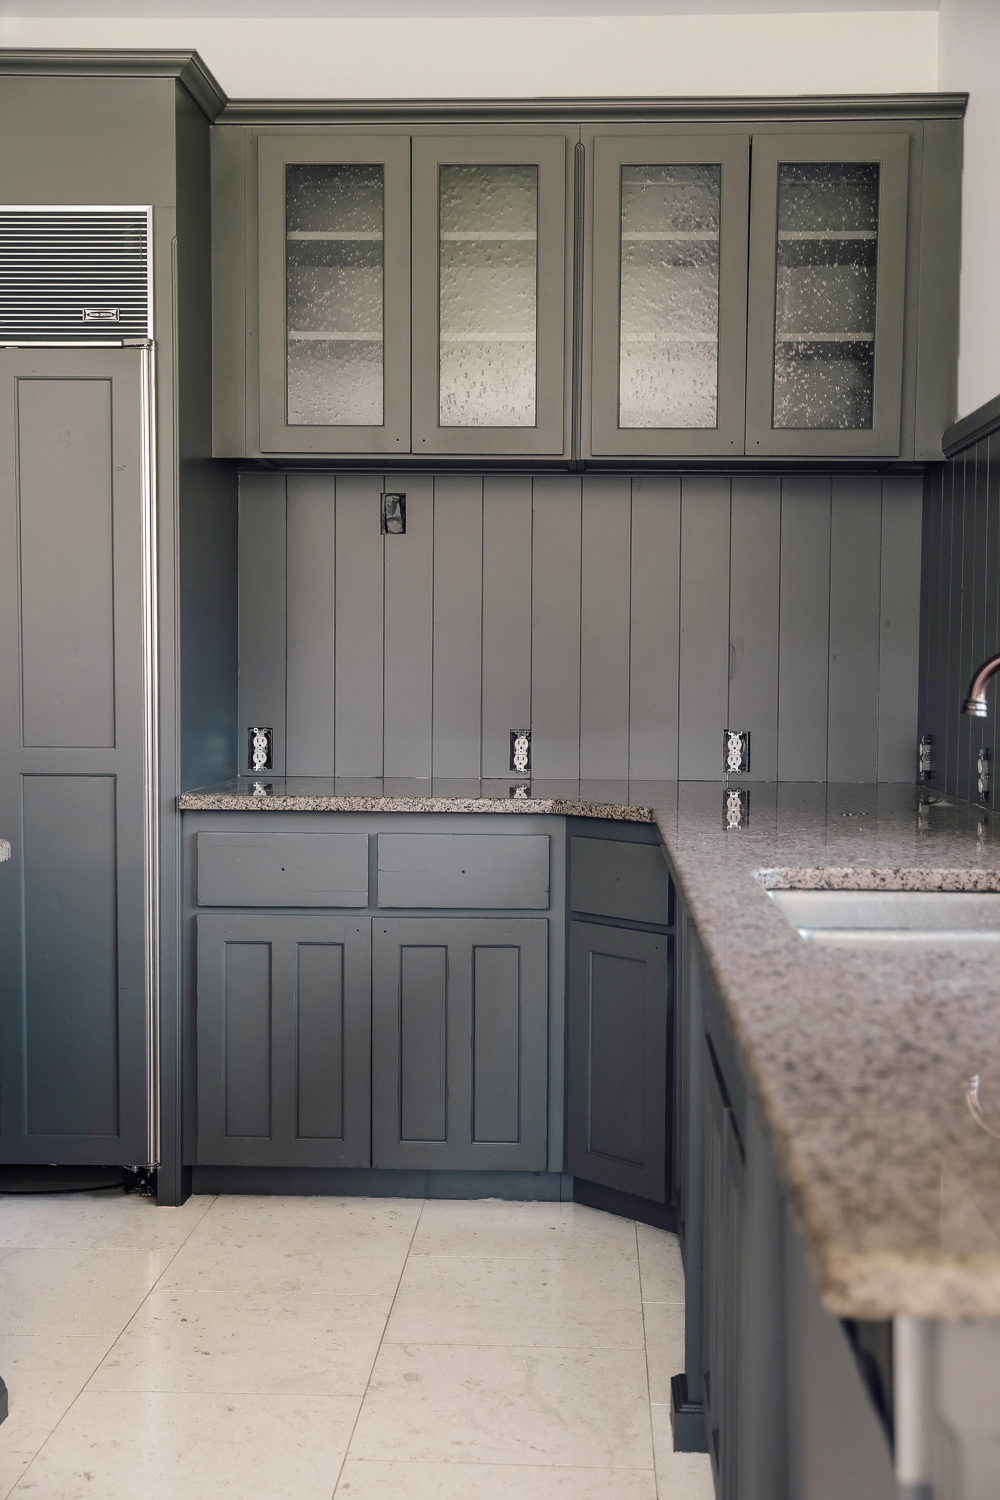 How To Paint Your Cabinets In A Weekend Without Sanding Them